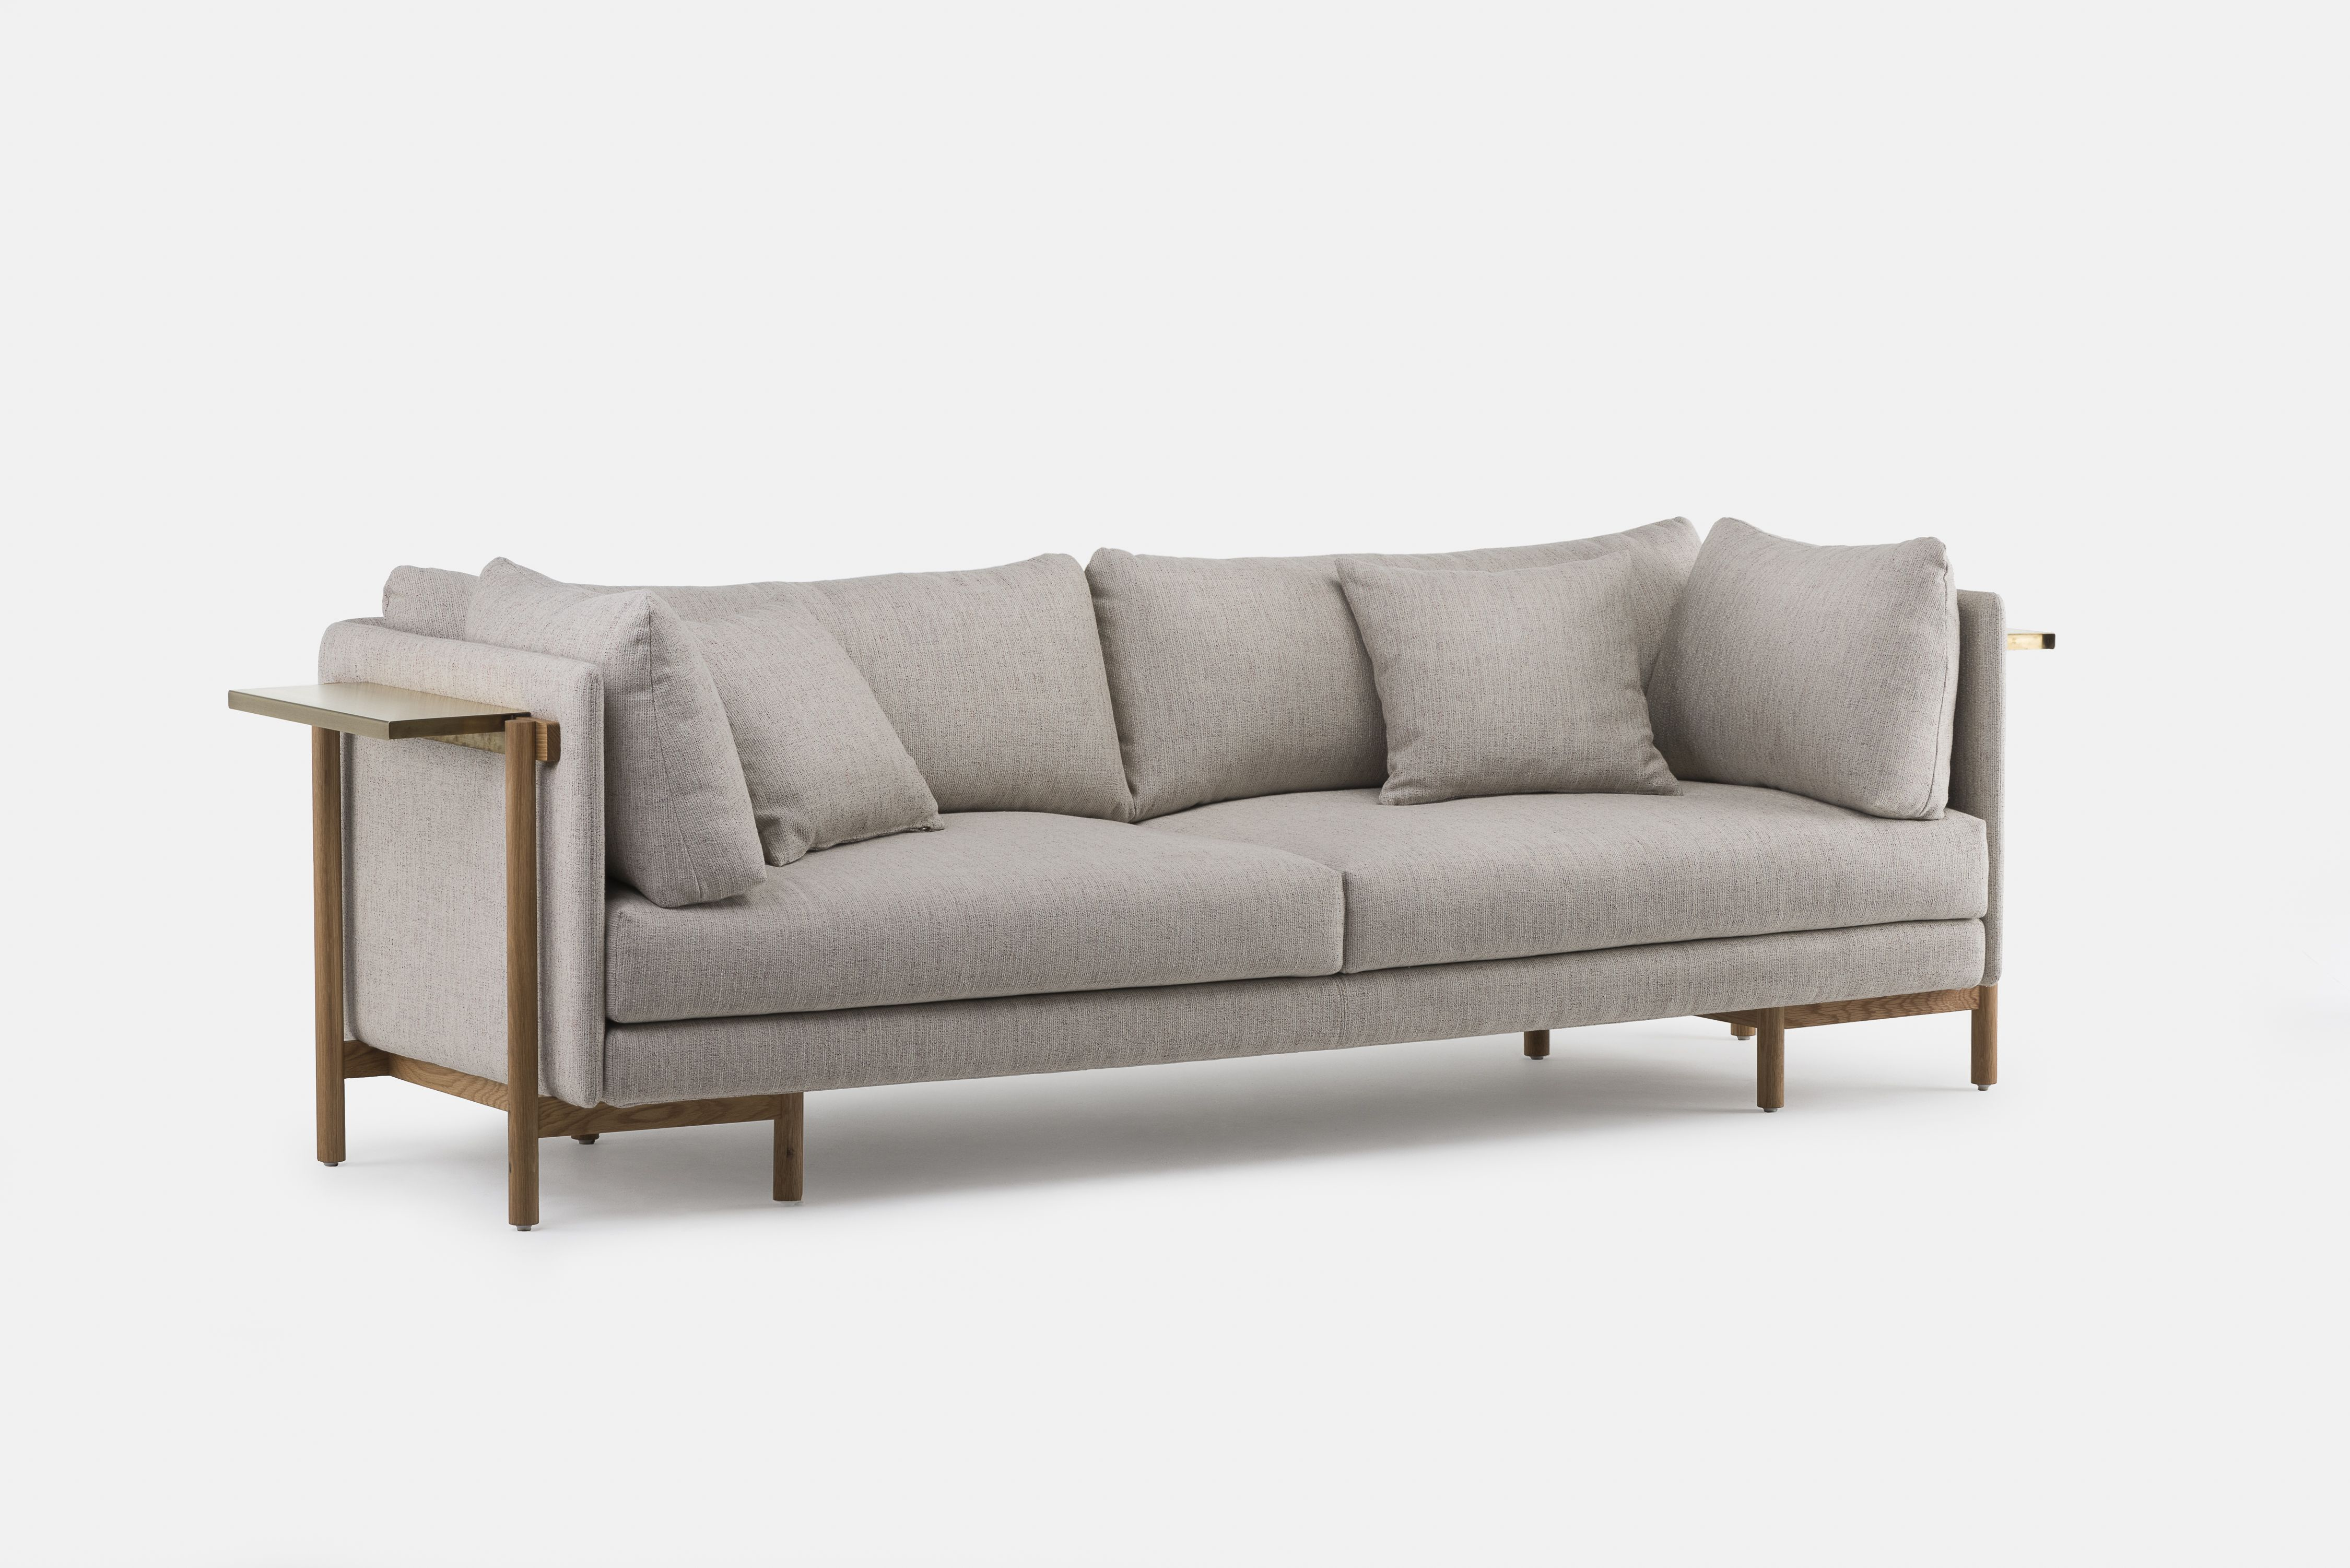 Frame Medium Sofa Designed By Neri Hu And Crafted By De La Espada Sofa Frame Sofa Sofa Design